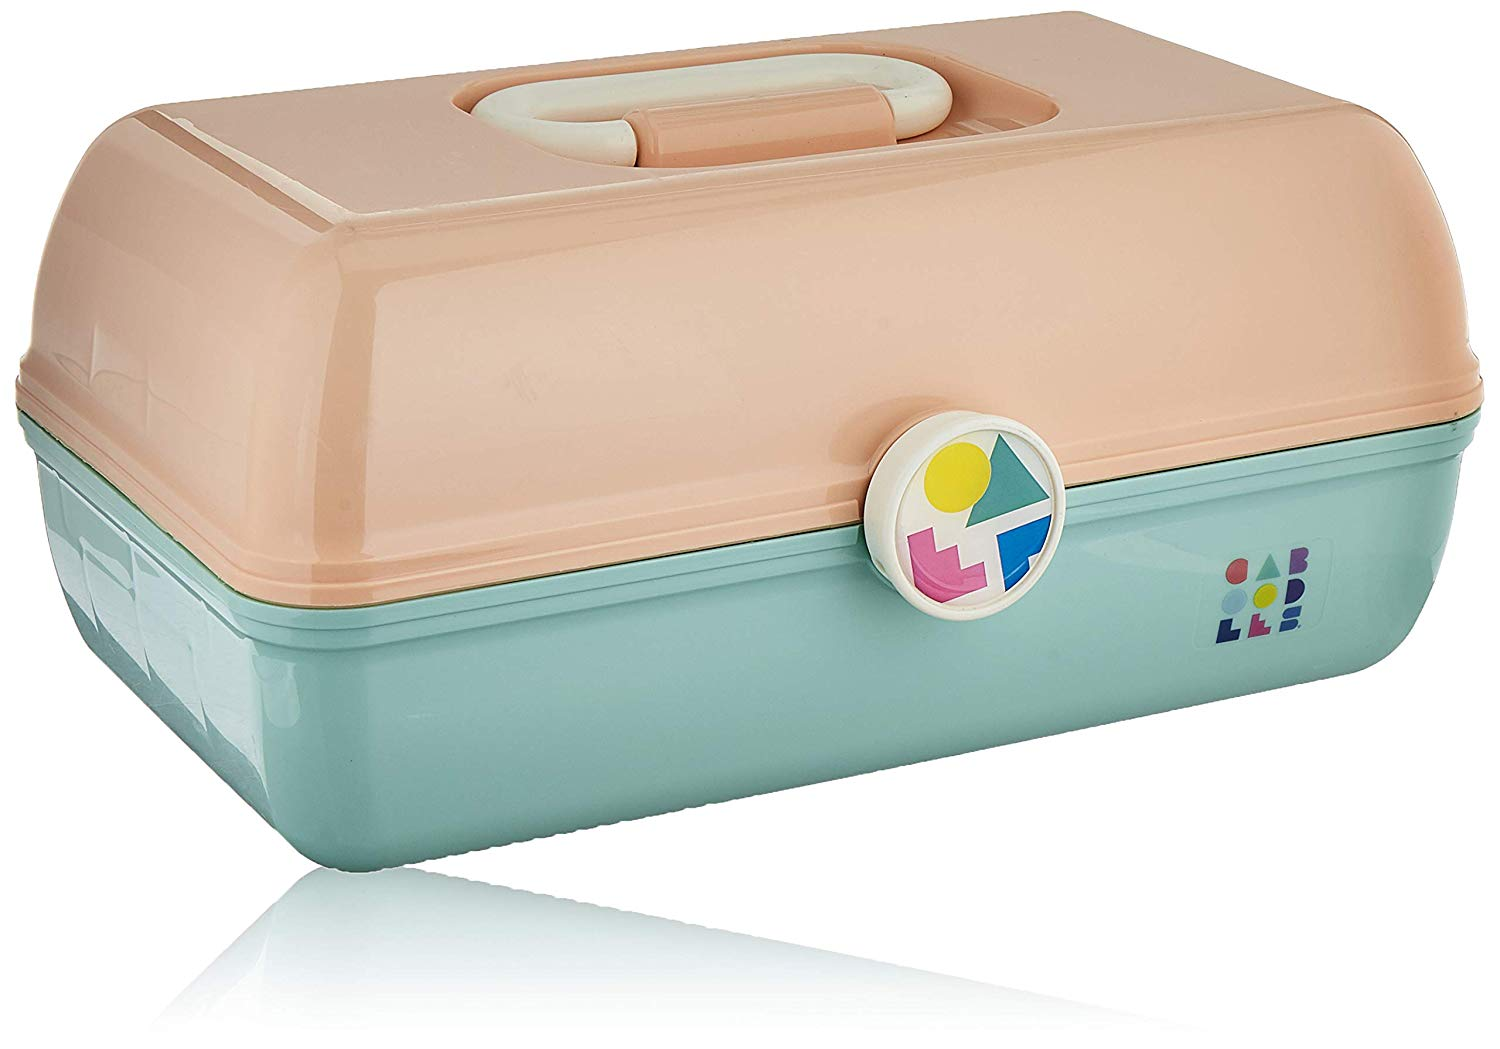 Caboodles On-The-Go Girl Peach Lid & Sea Foam Base Vintage Case, 1 Lb, $17 @amazon.com